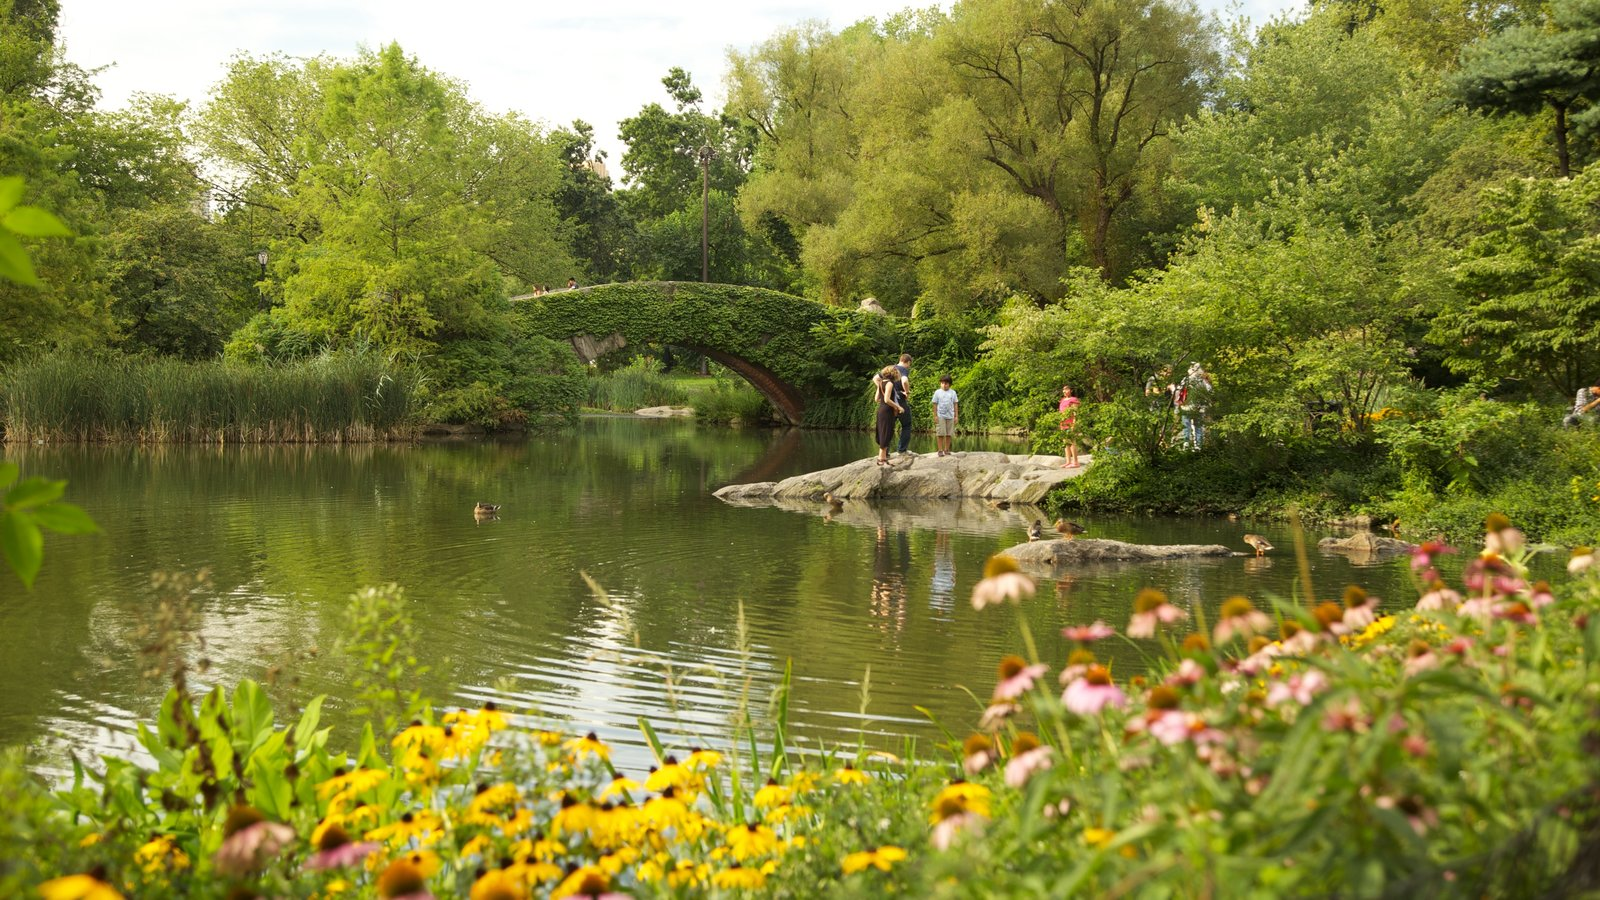 Central Park which includes a garden, a pond and flowers